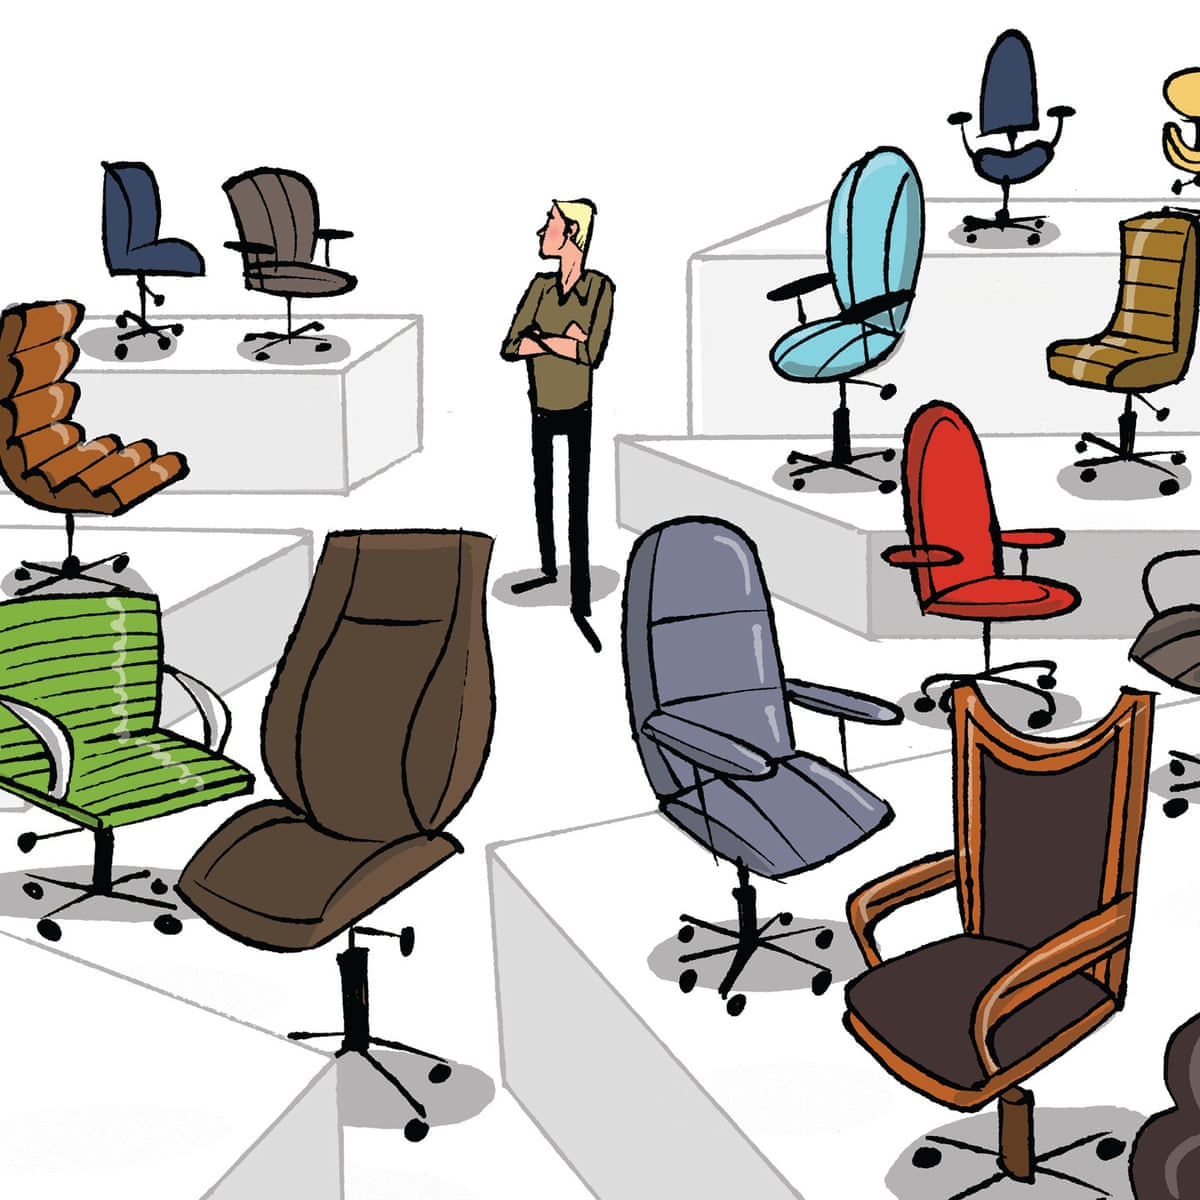 Where Can I Find A Good Desk Chair Without Spending A Fortune Money The Guardian